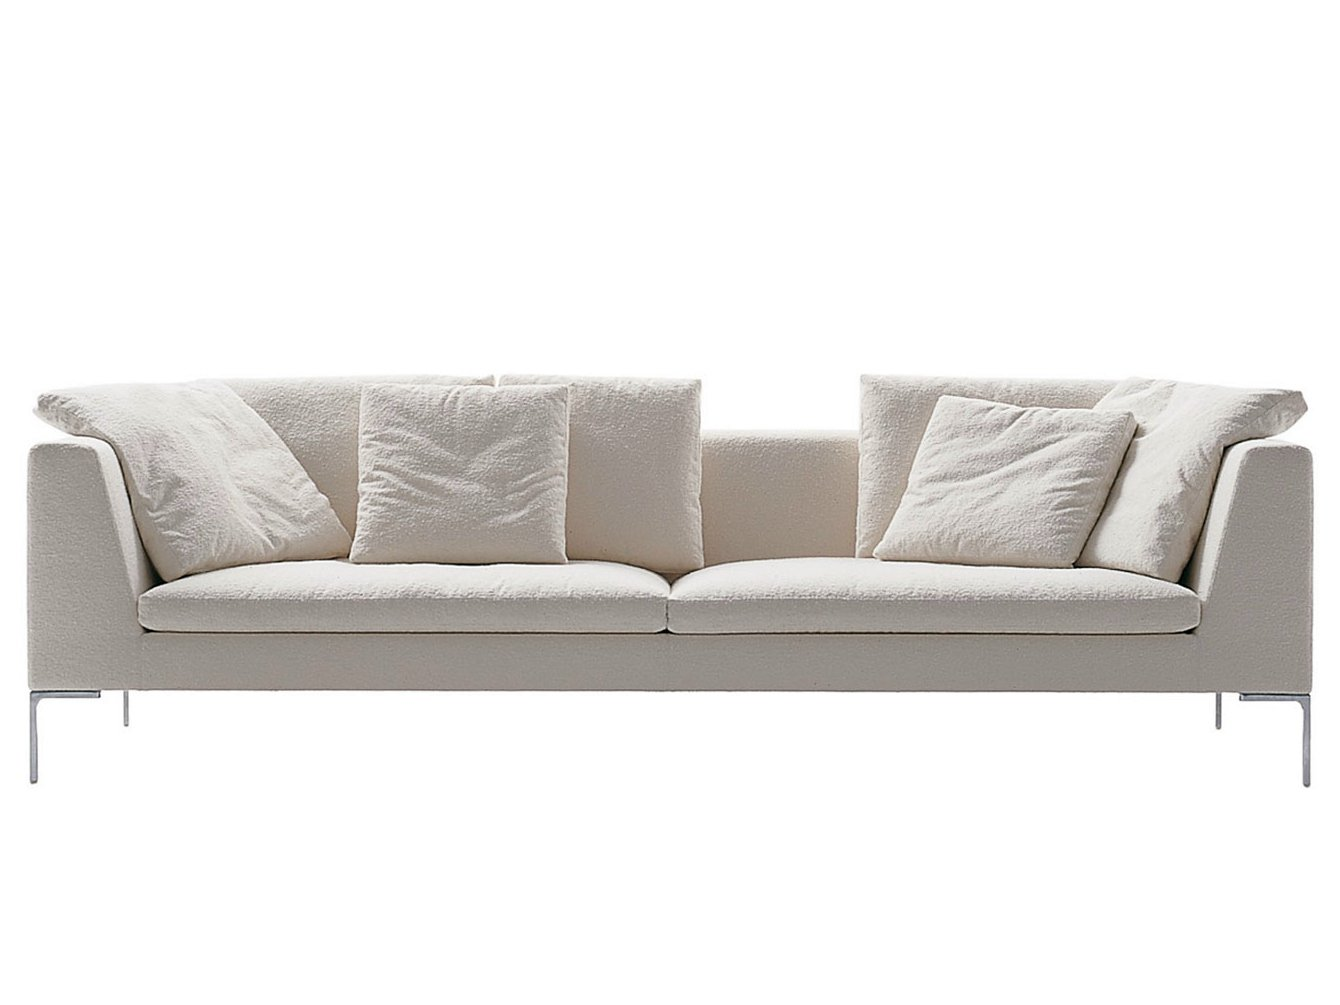 Charles Large Sofa By B B Italia Design Antonio Citterio